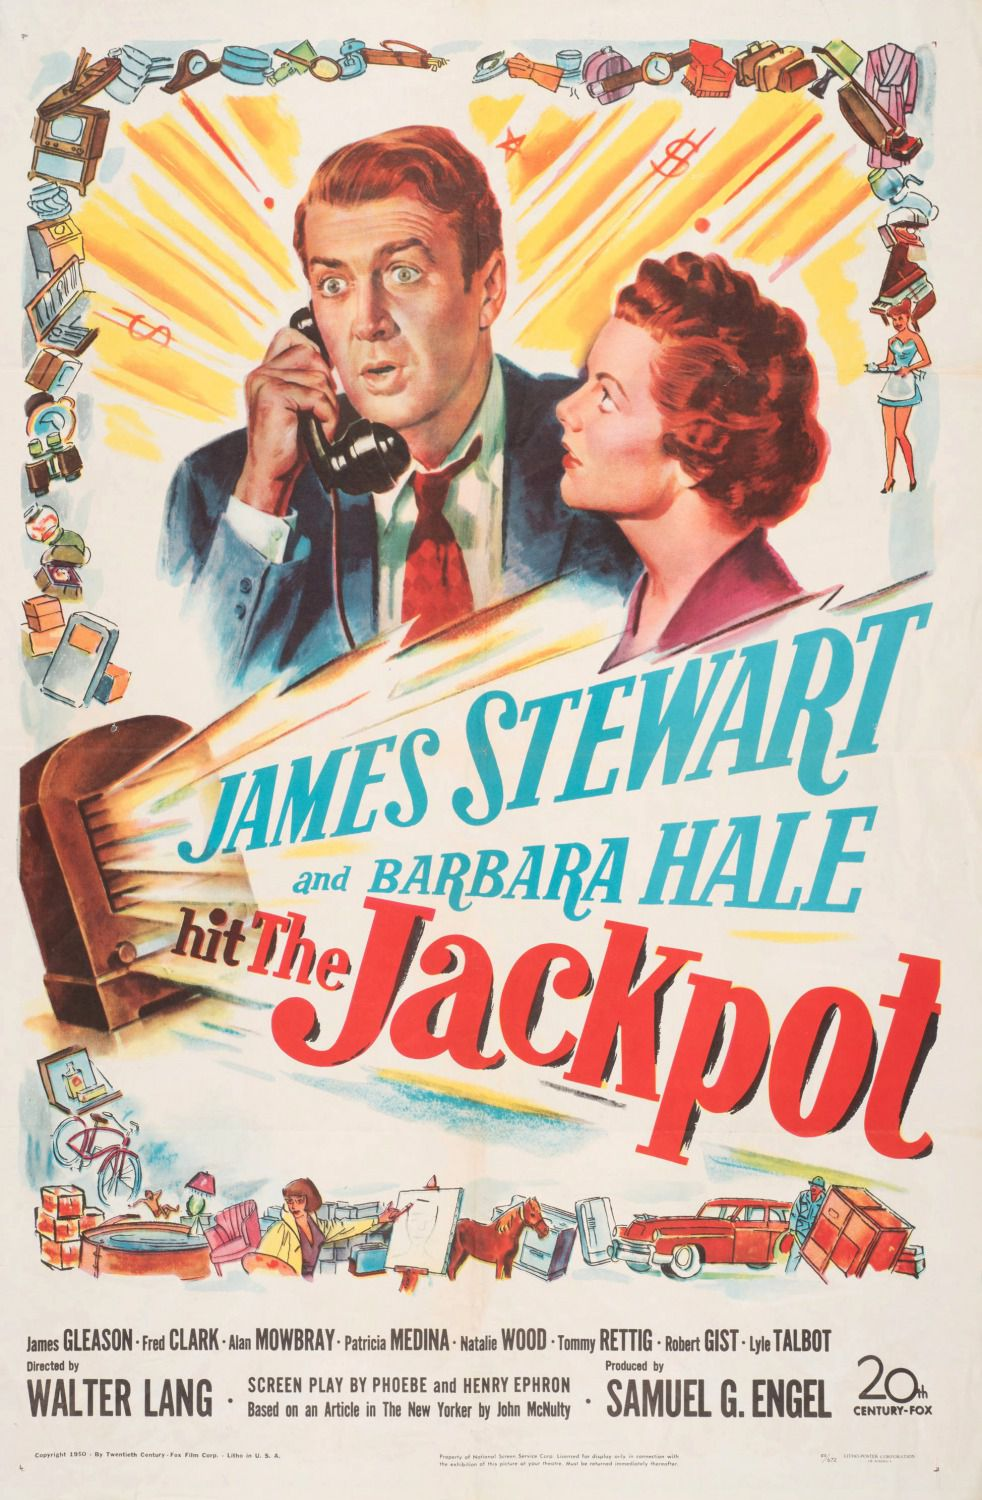 The Jackpot - cult old film 1950